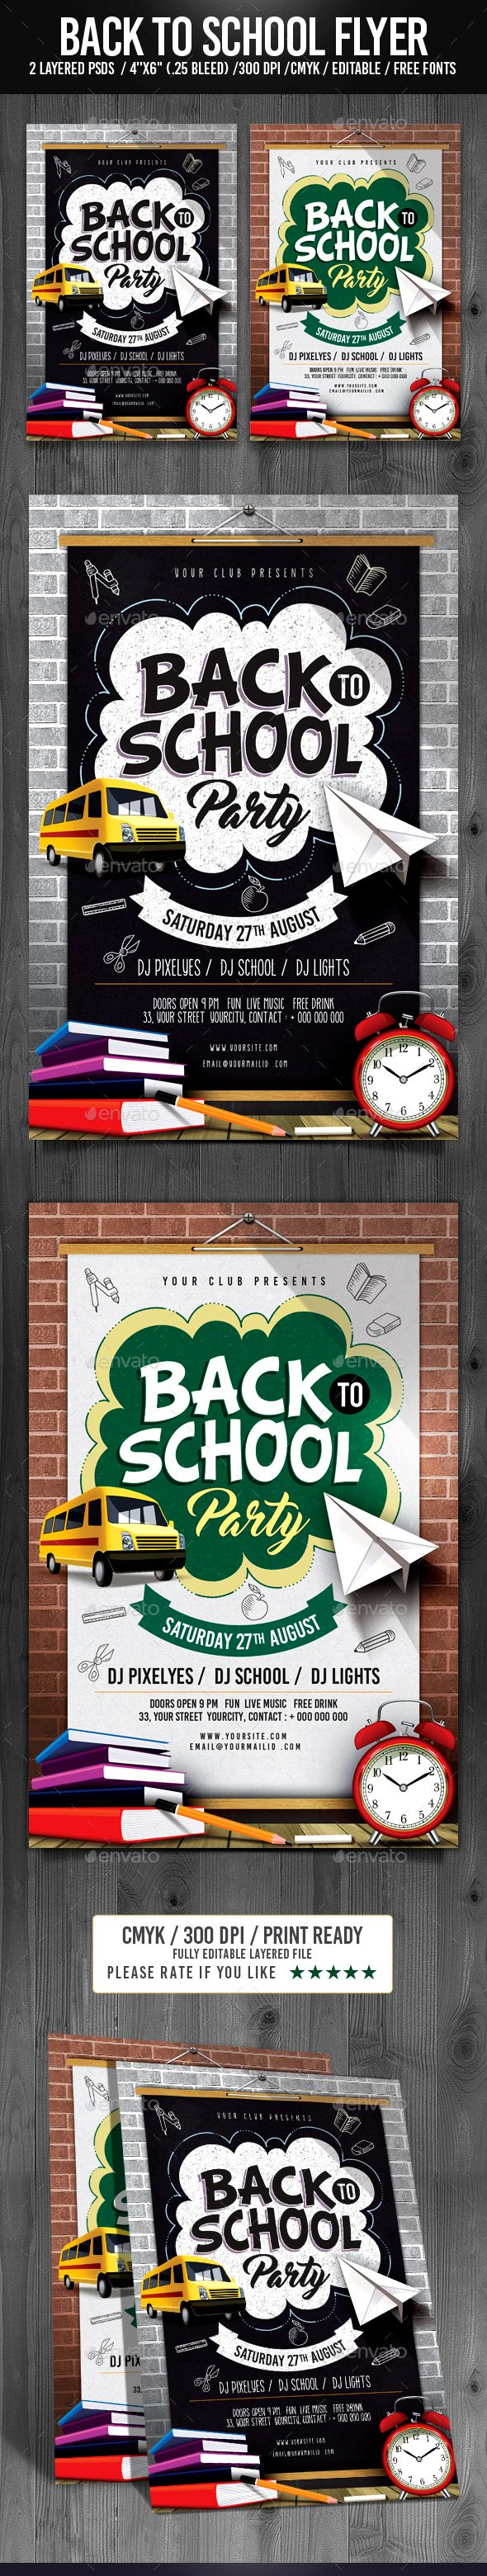 The 48 best KFL images on Pinterest | Posters, Advertising and Flyer ...